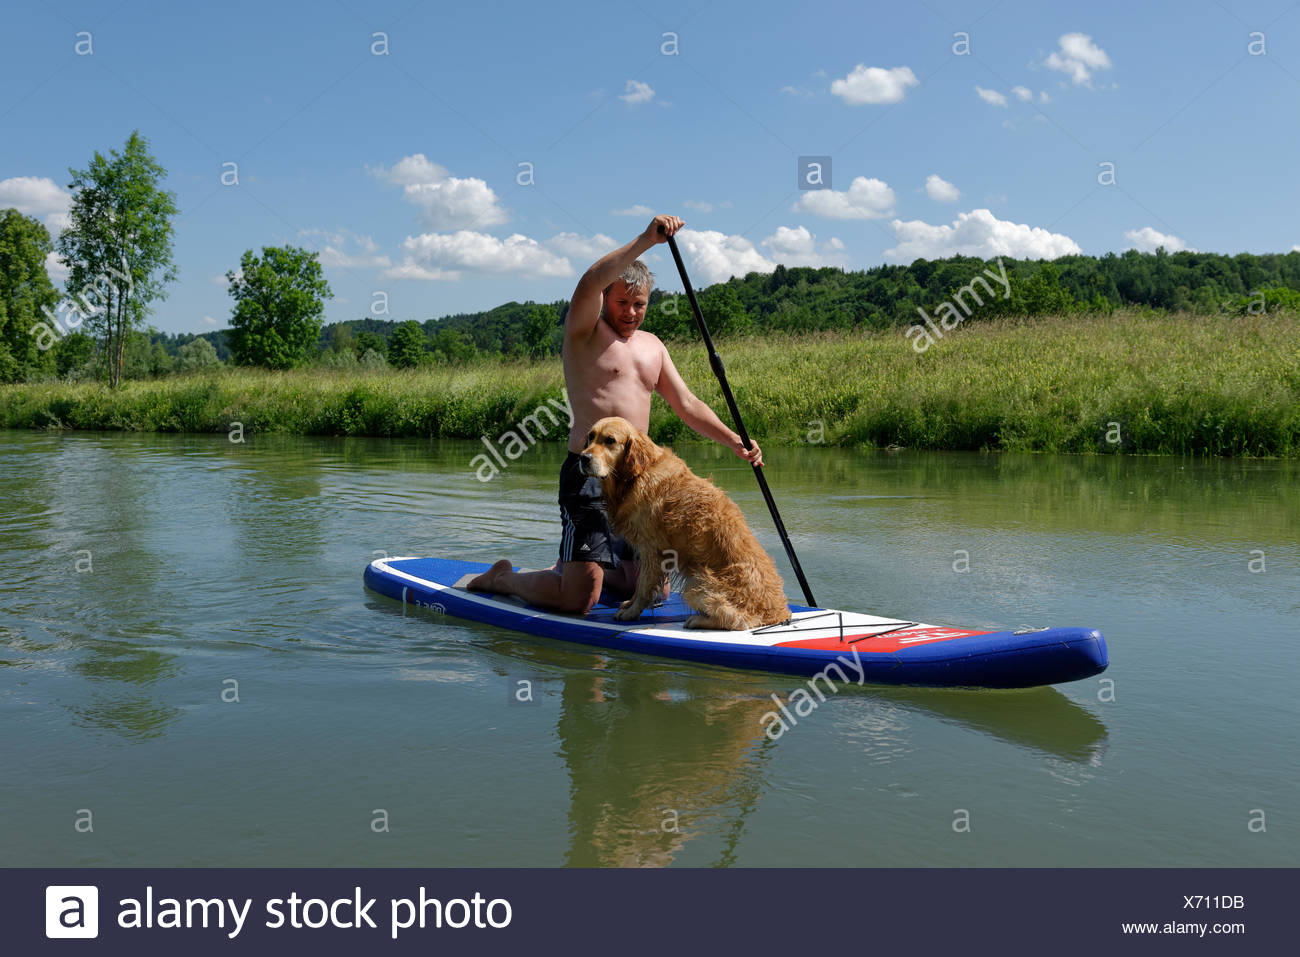 Dog Surfing Stock Photos Amp Dog Surfing Stock Images Alamy